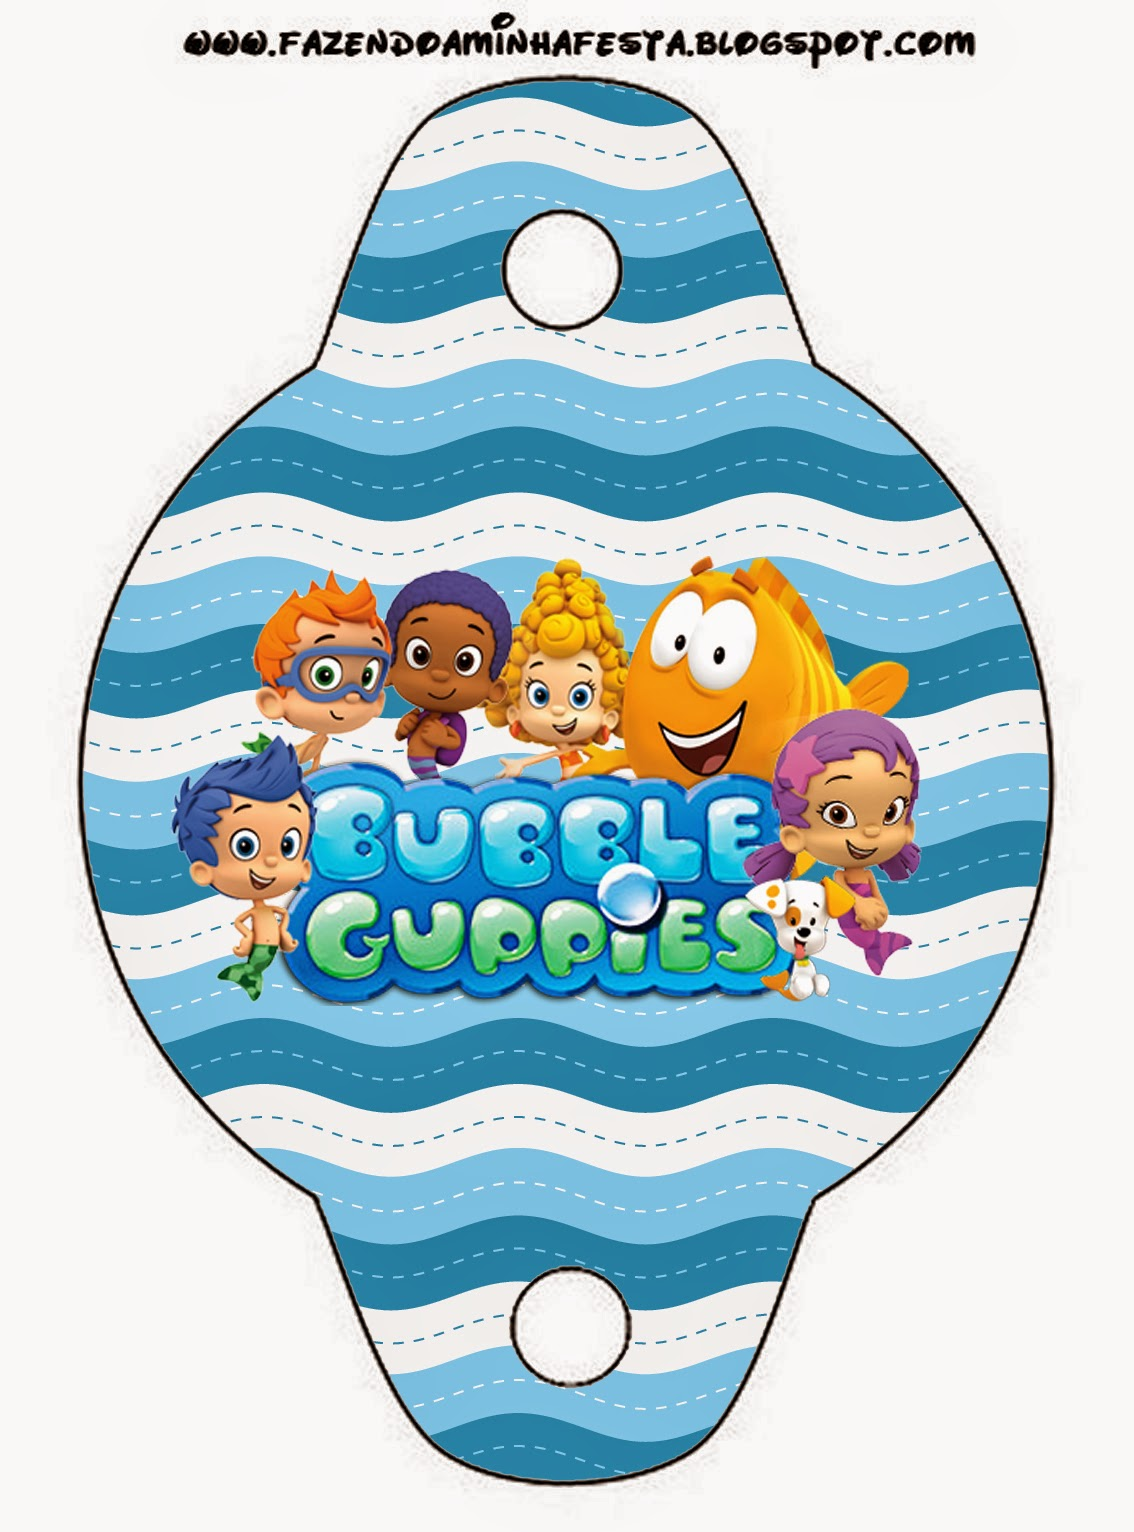 Bubble Guppies Free Party Printables Is It For Parties Is It Free Is It Cute Has Quality